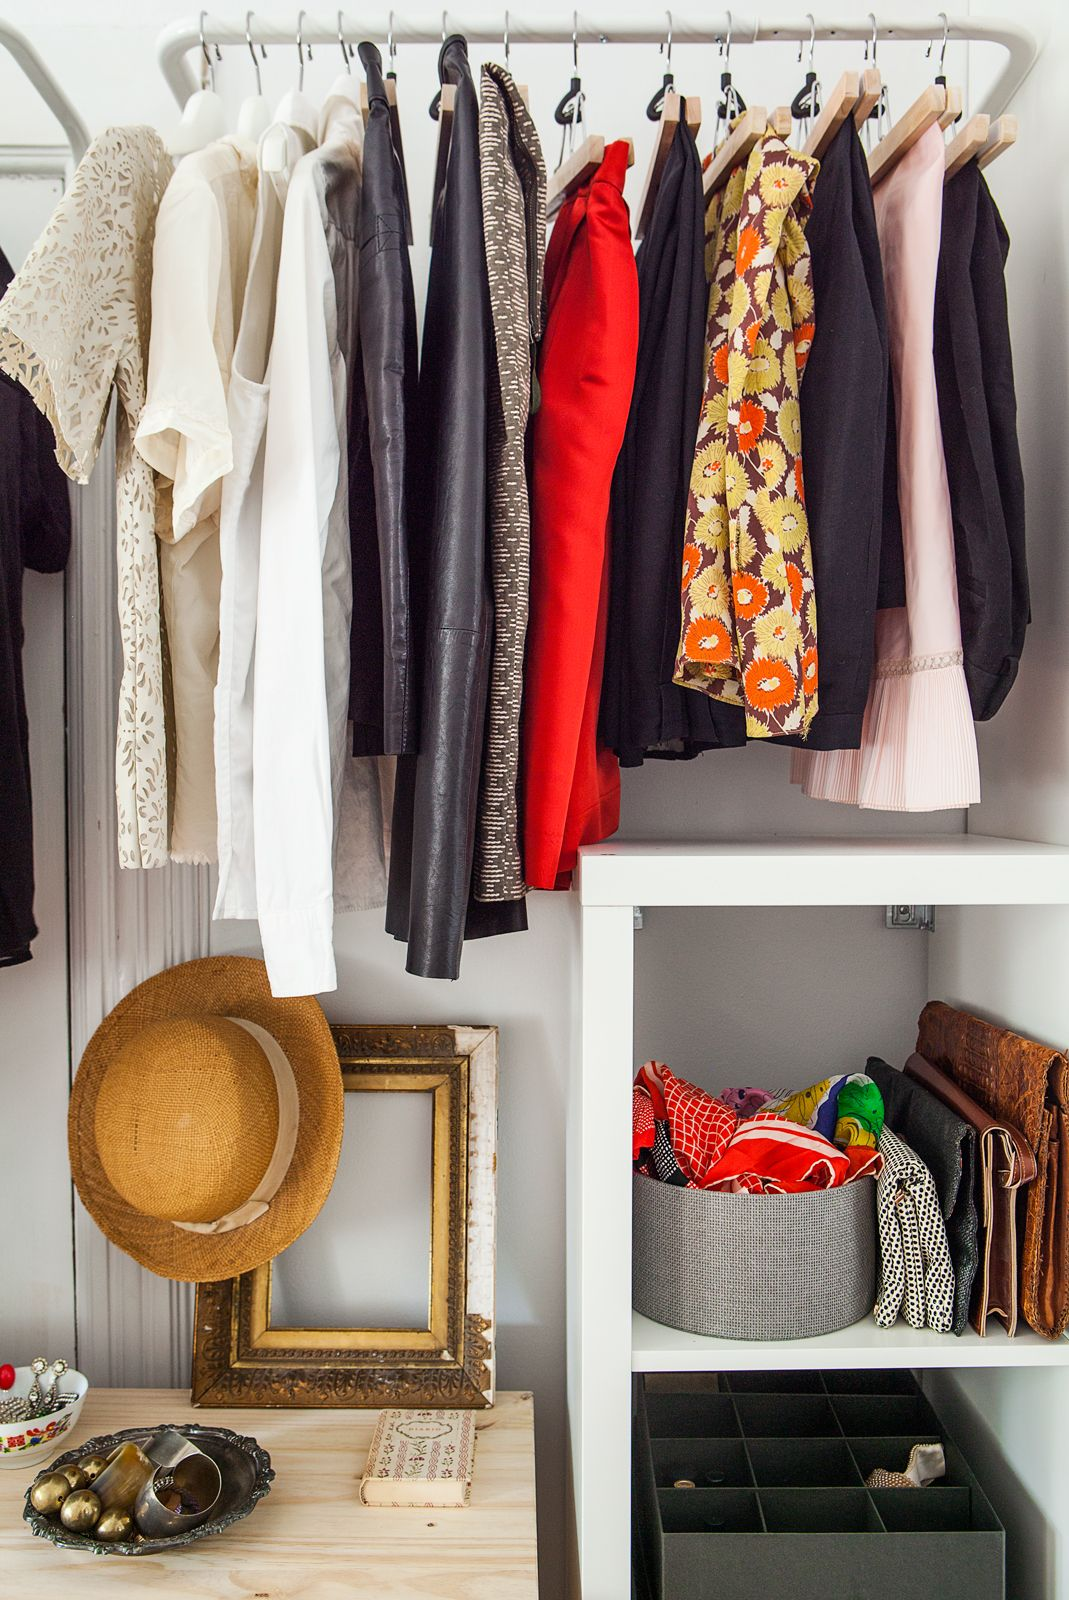 How to organize an awkward closet rsvp small space - Closets for small spaces ...